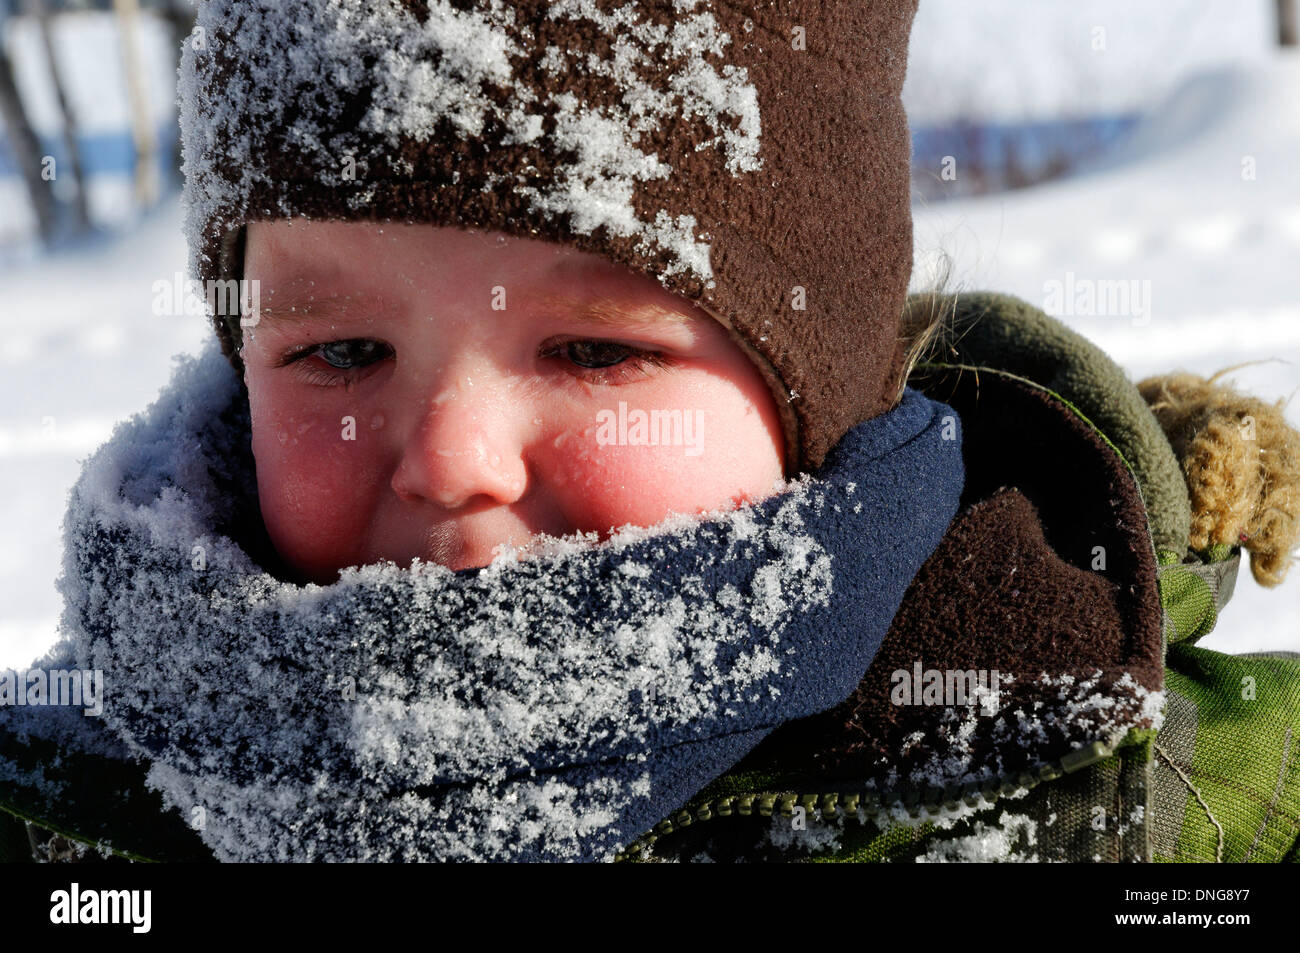 A 20 moth old baby boy crying after falling face first into snow (and dad was mean enough to shoot first and console after) - Stock Image